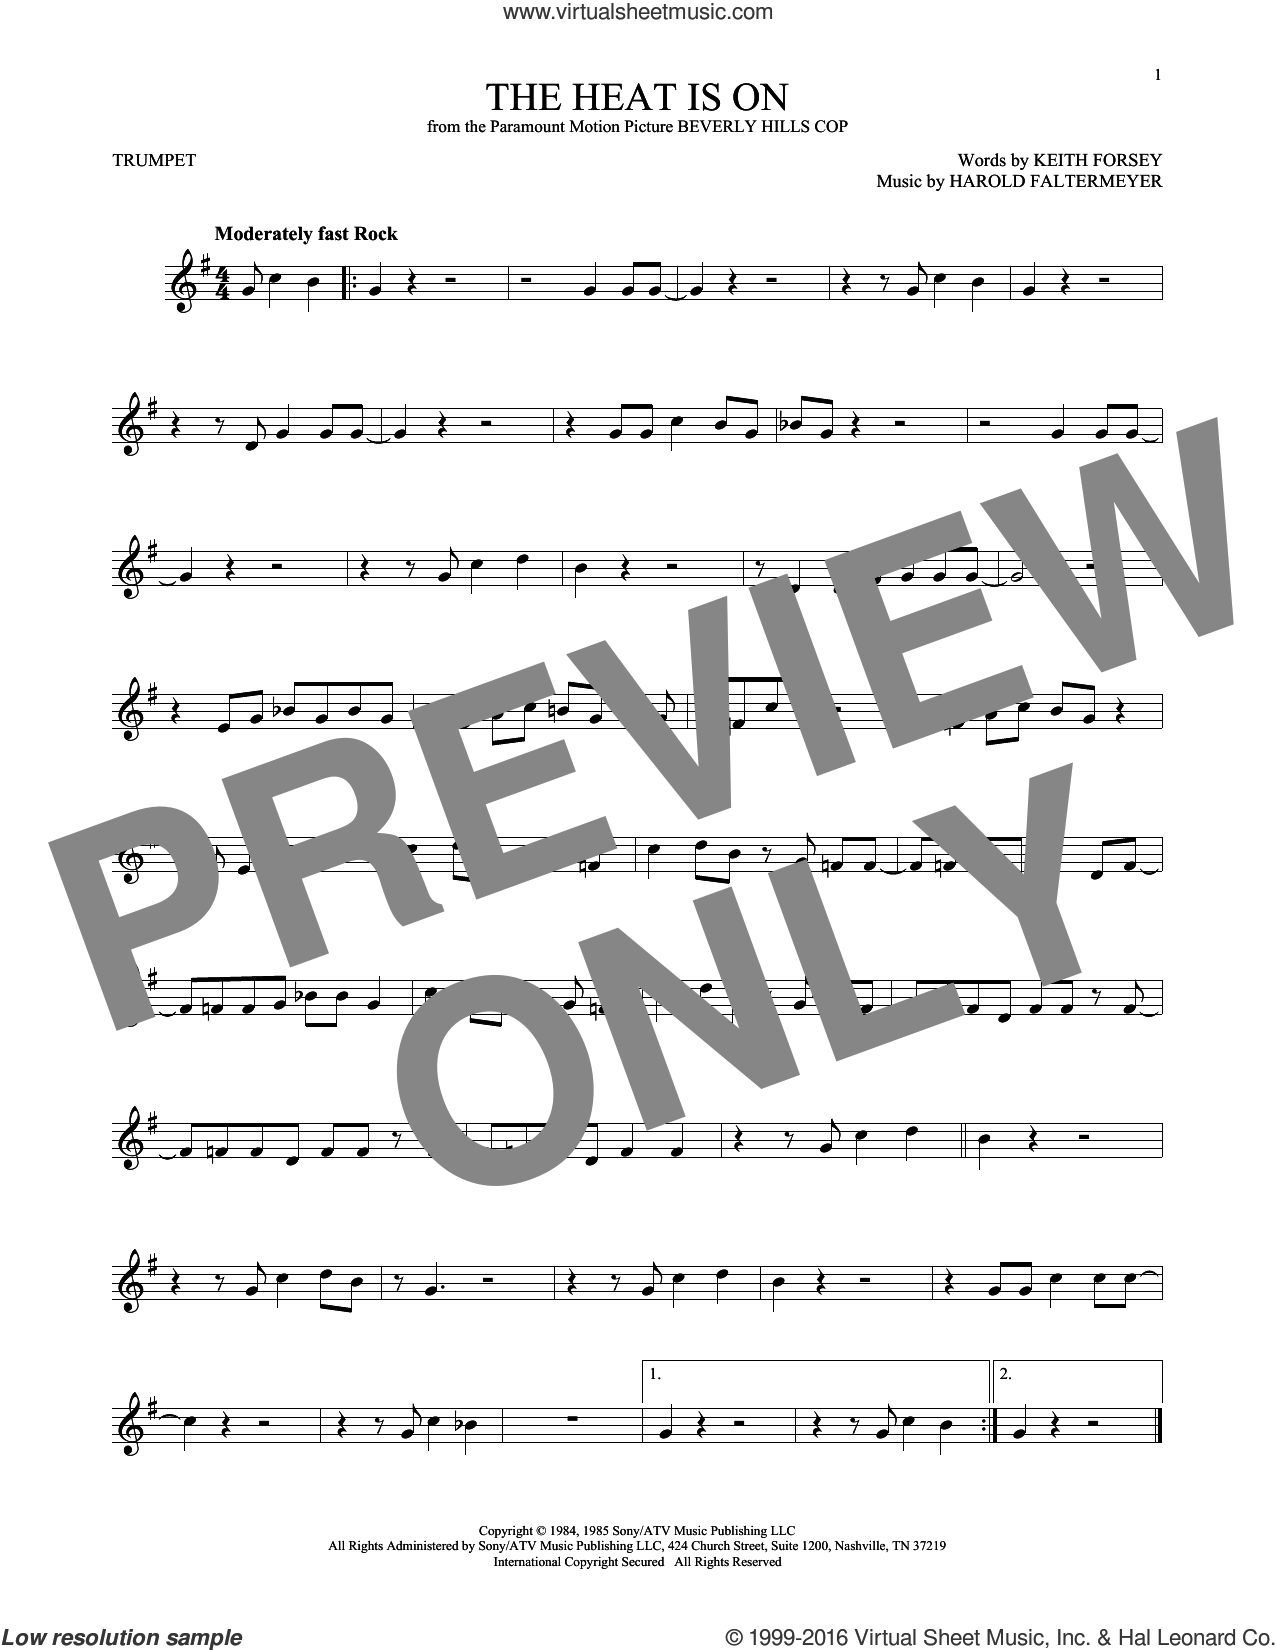 The Heat Is On sheet music for trumpet solo by Glenn Frey, Harold Faltermeyer and Keith Forsey, intermediate